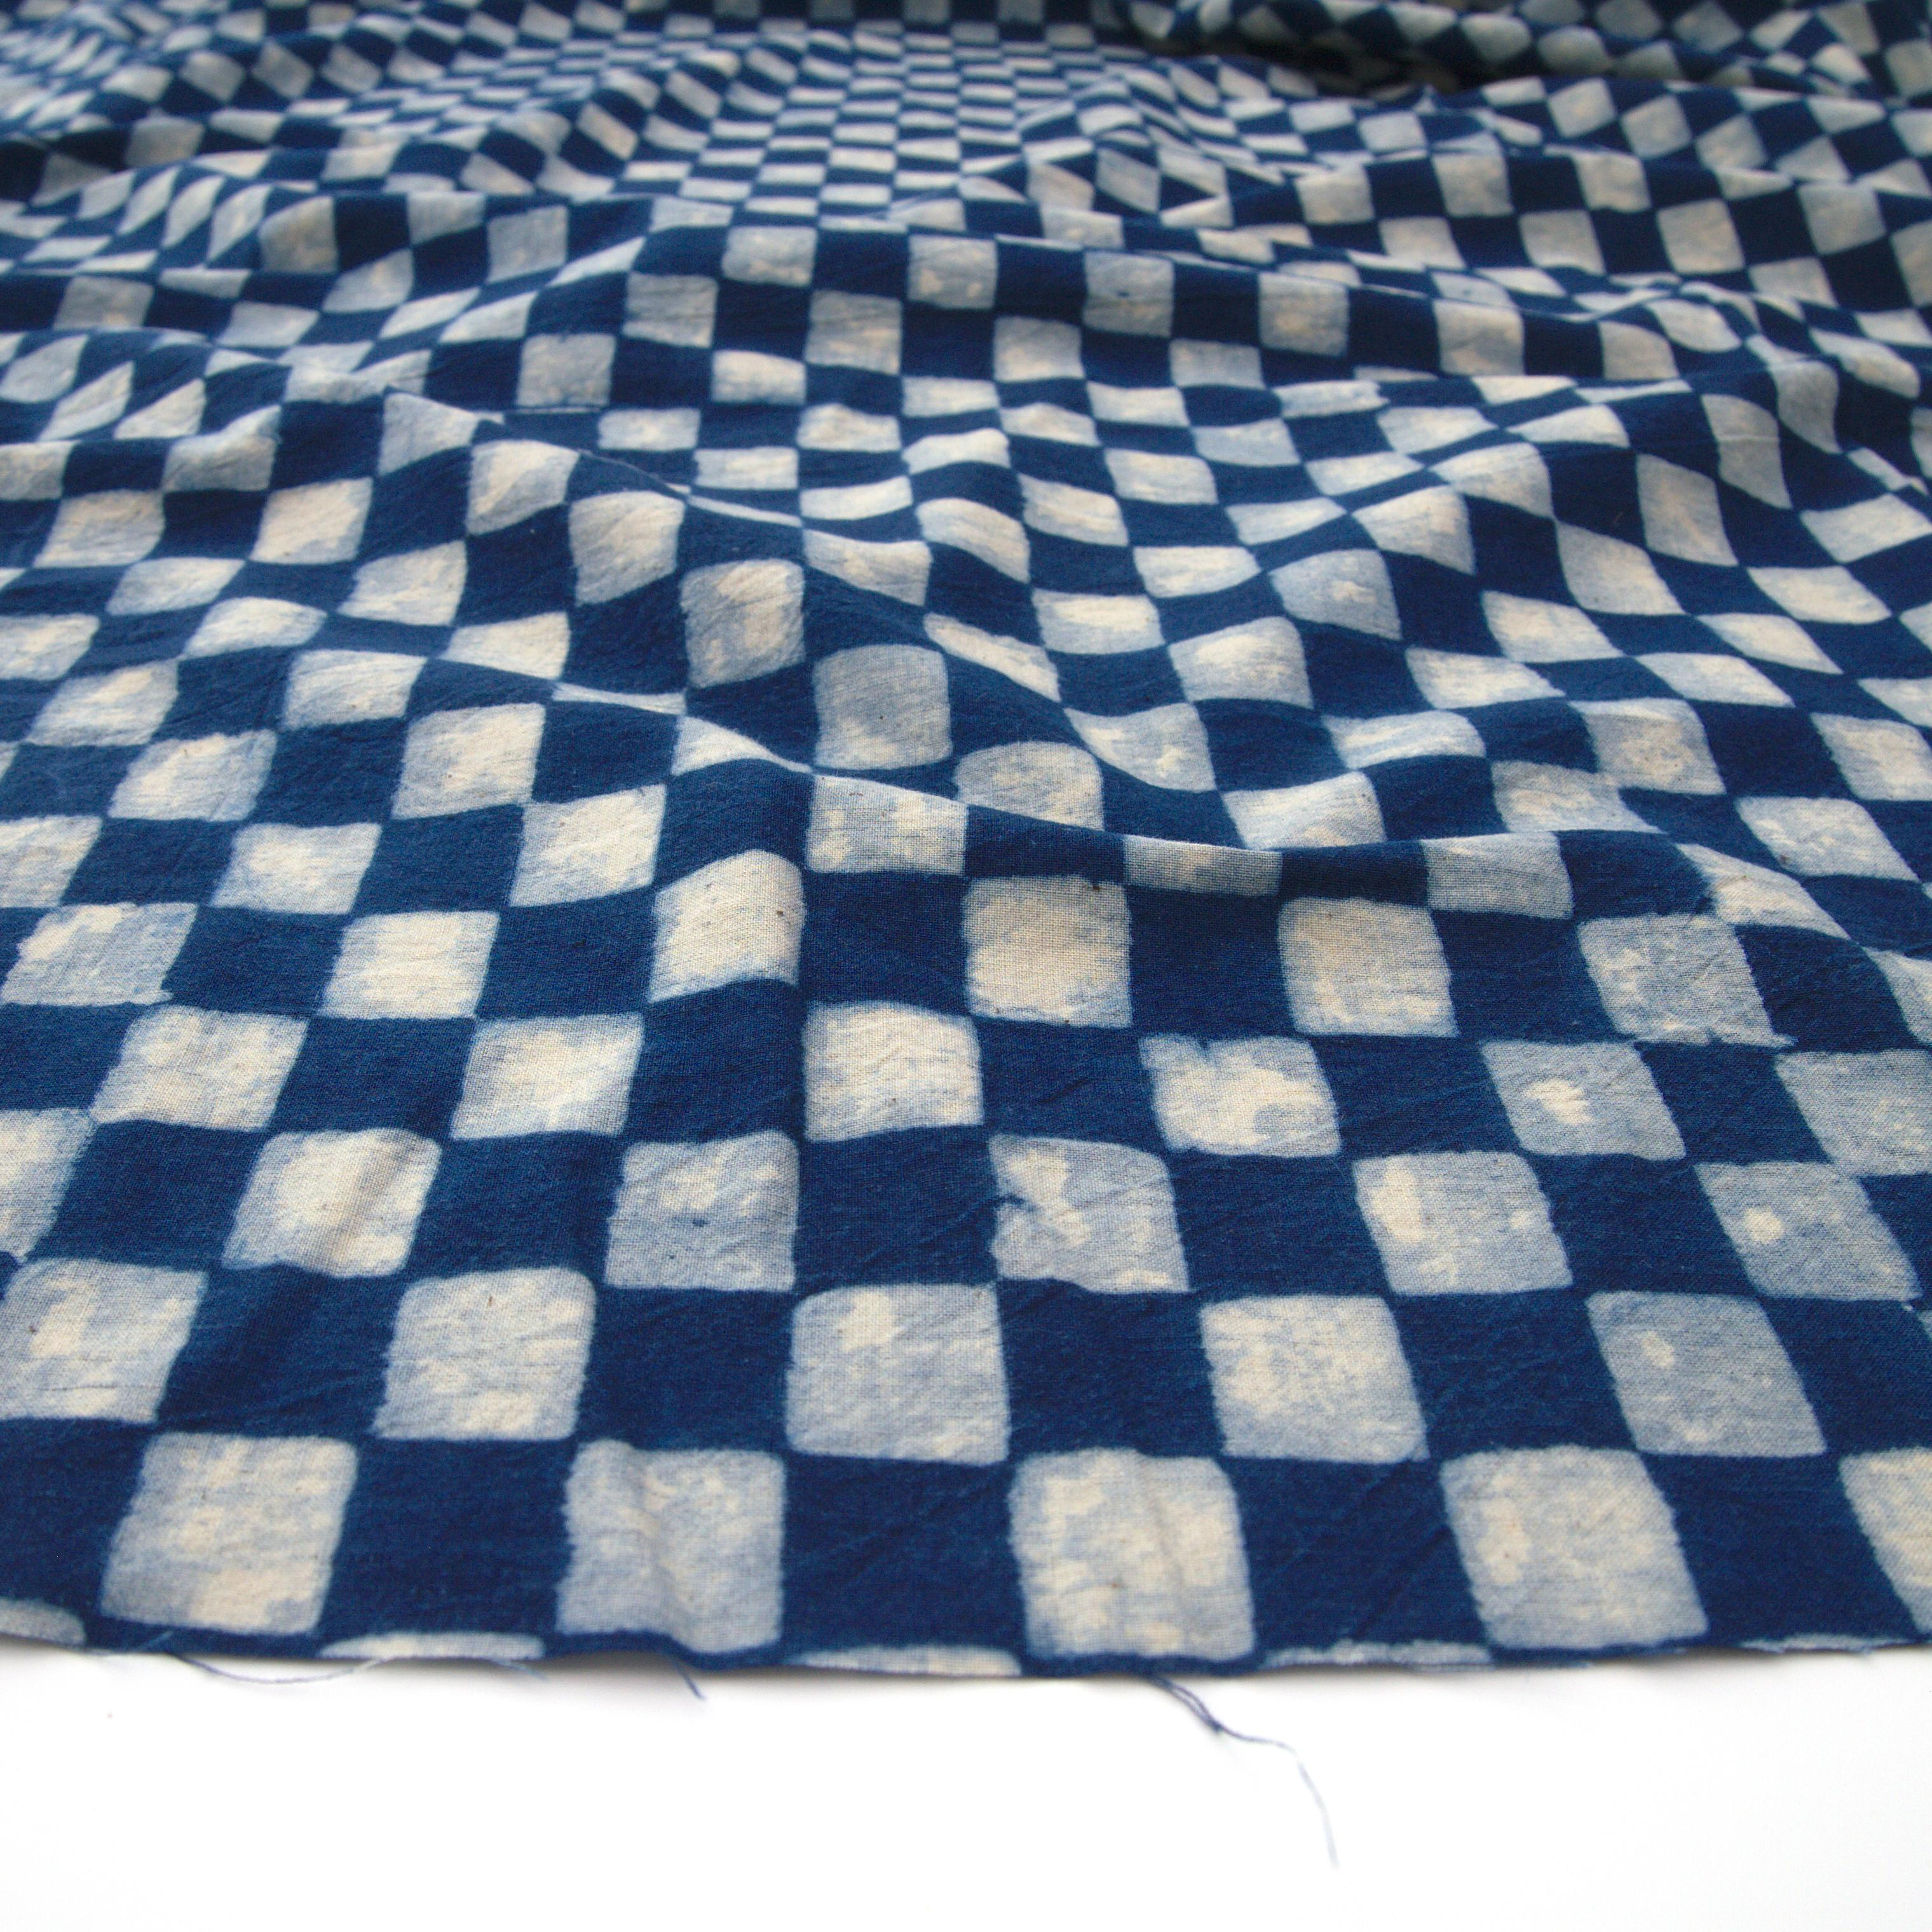 1a - IBR10 - 100% Block-Printed Cotton Fabric From India- Ajrak - Indigo White Resist Chequers Print - Angle